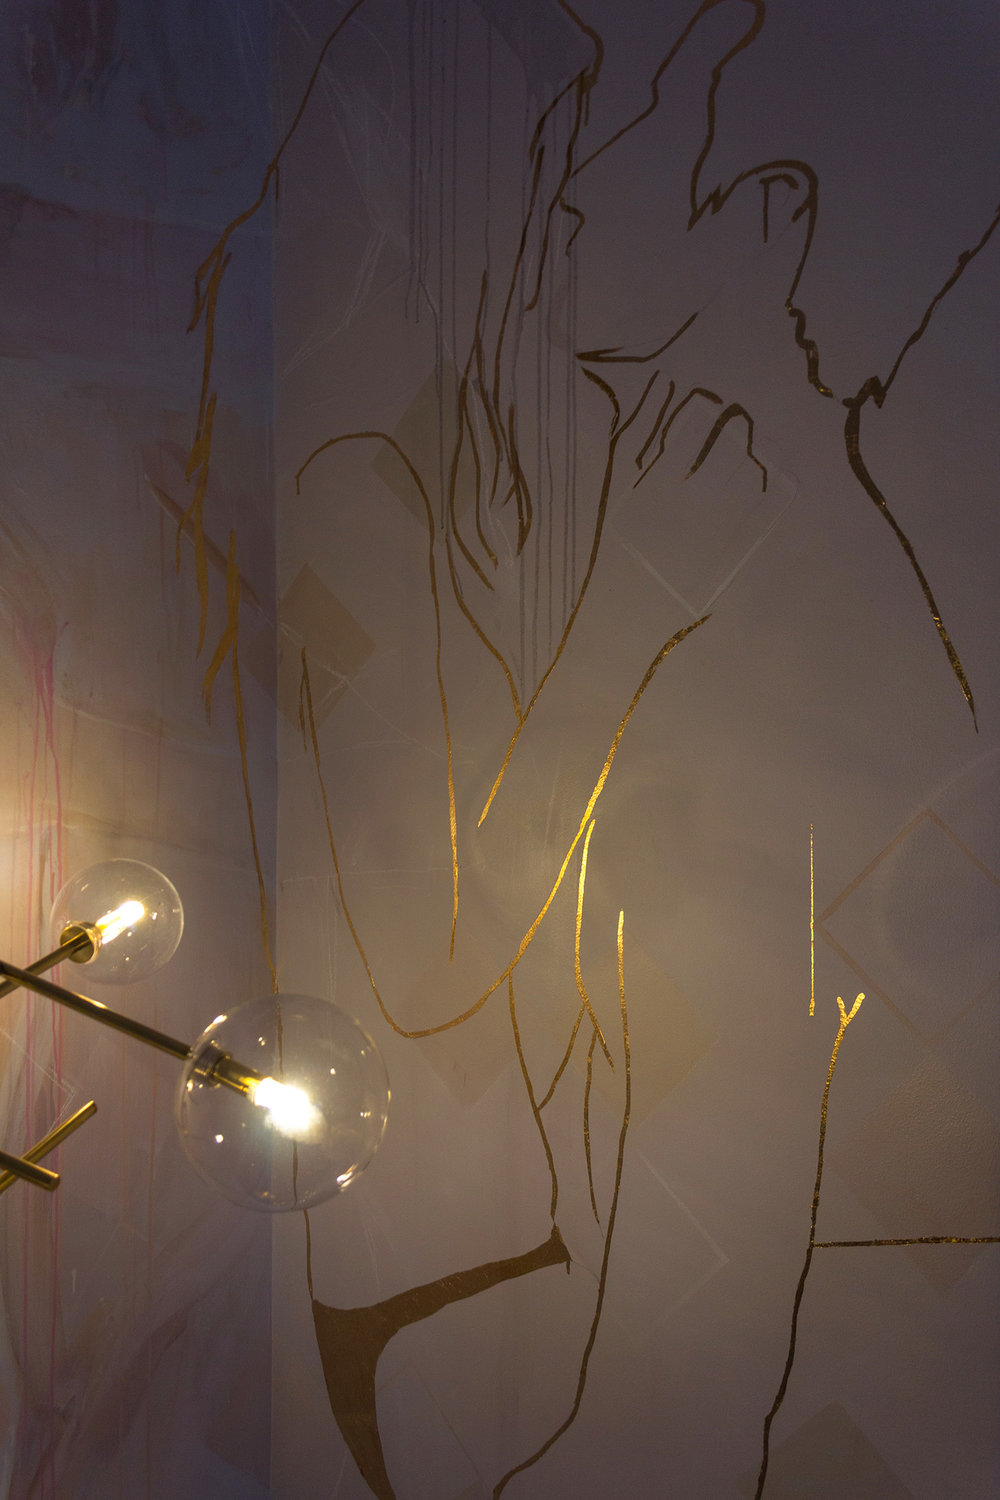 Mural featuring gold leaf outline of couple in love - male figure holds his girlfriend in his arms and they stare into each others eyes. A gold floor lamp illuminates the image.